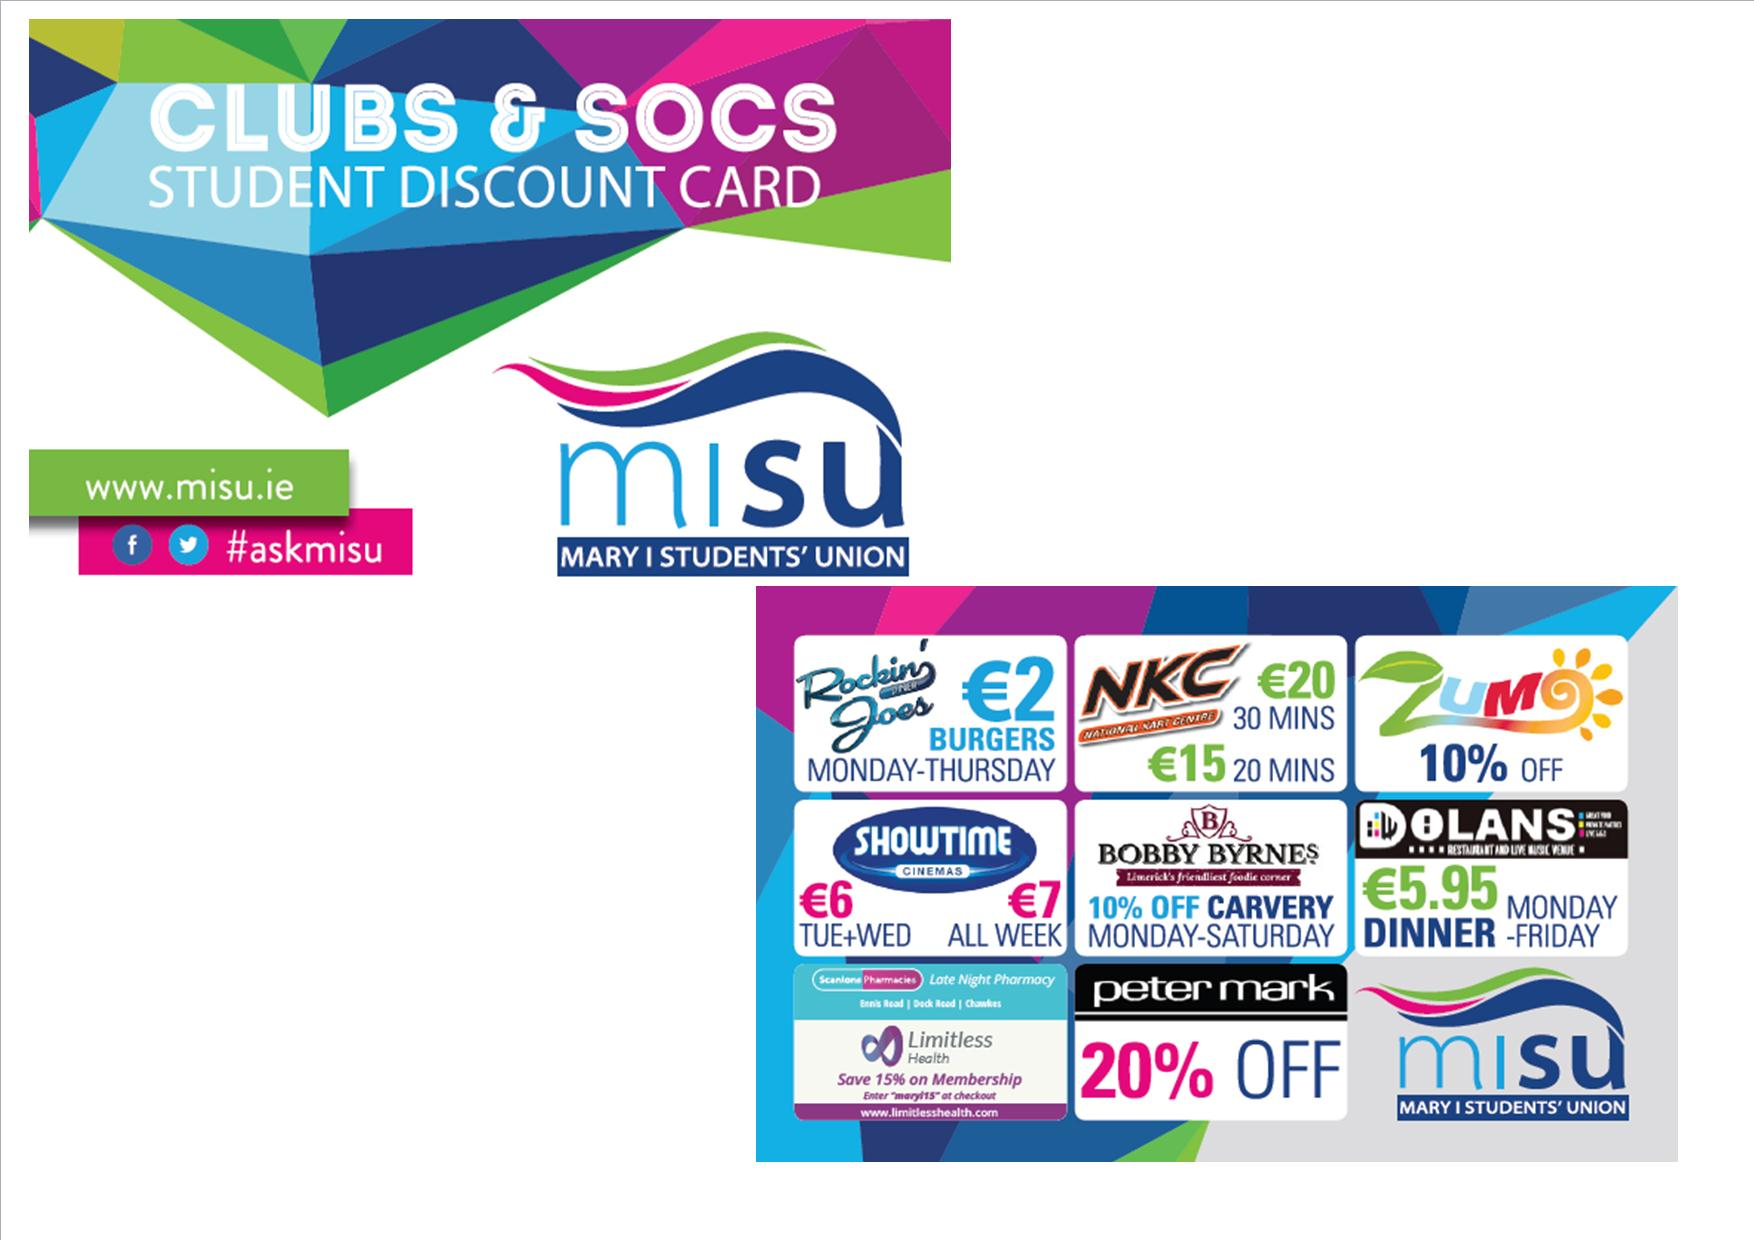 Clubs and Socs Discount Card